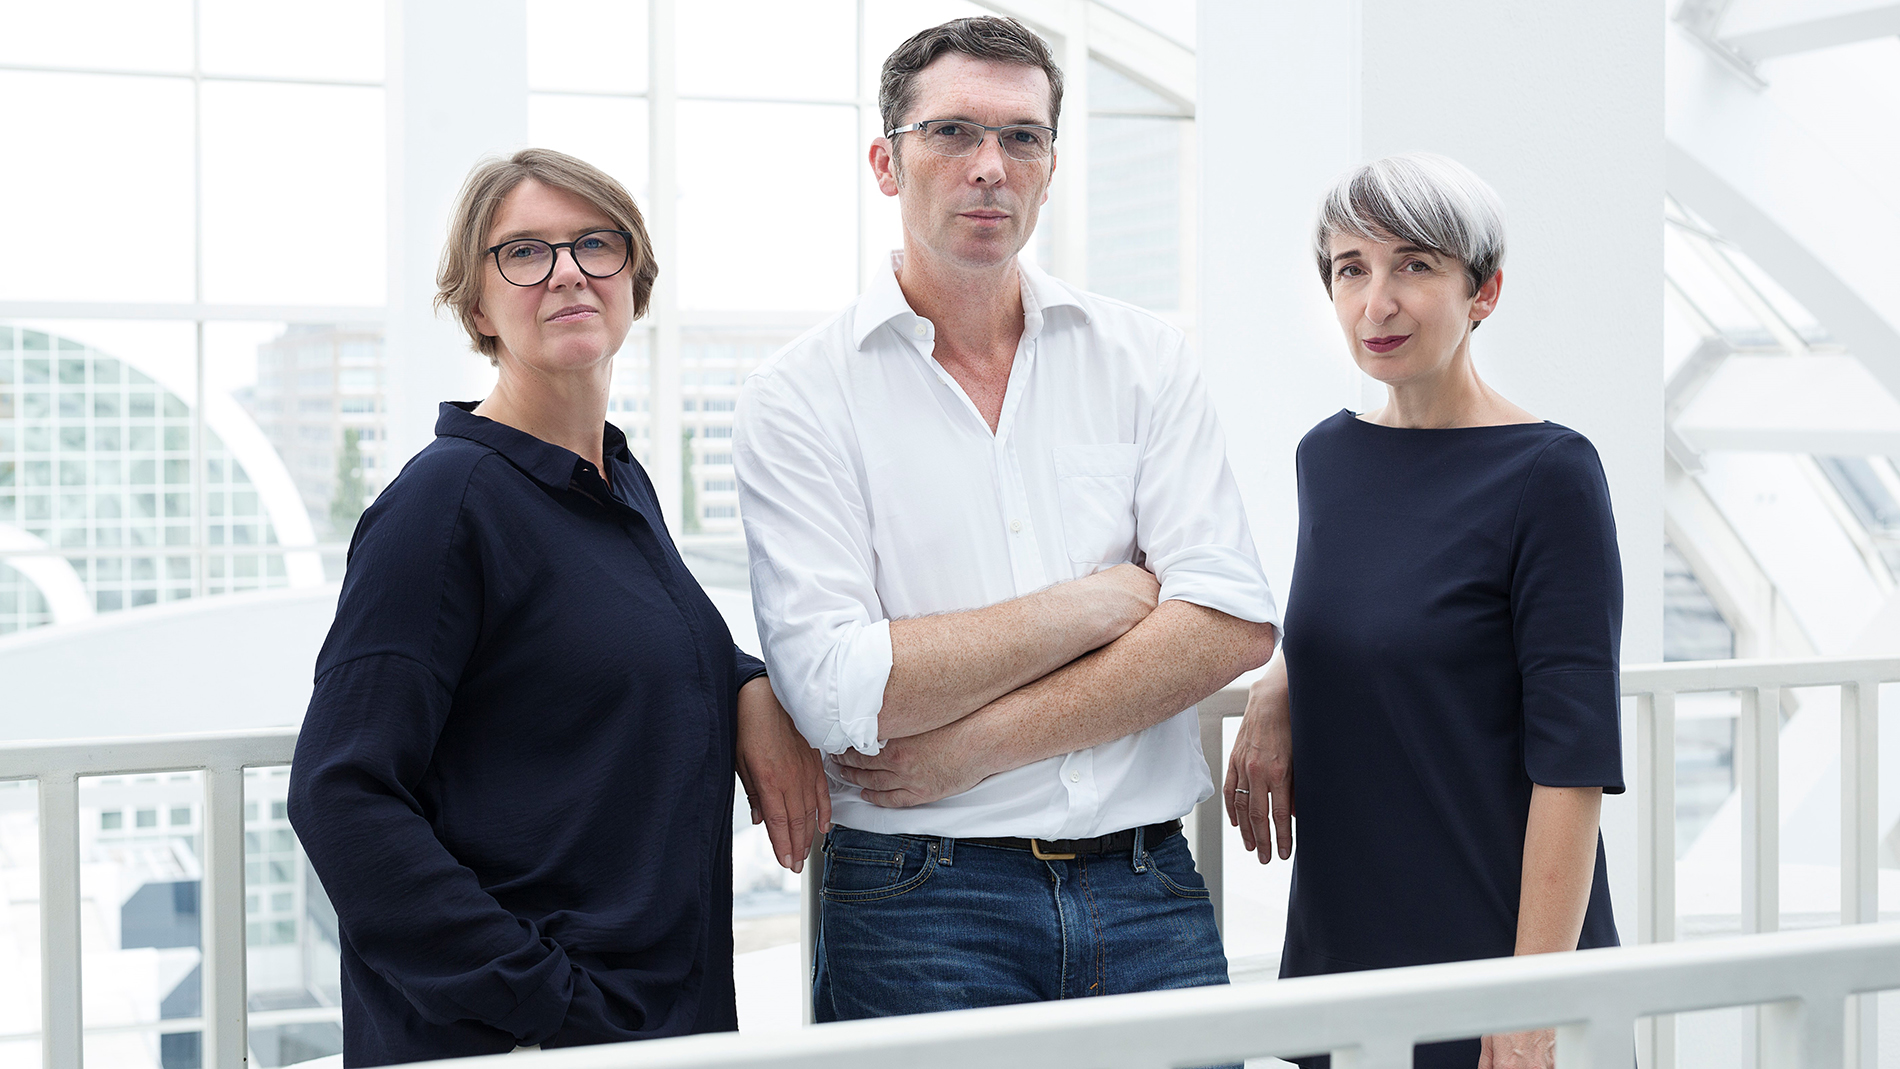 Designers Claudia Herke, Cem Bora and Annetta Palmisano from the design studio bora.herke.palmisano